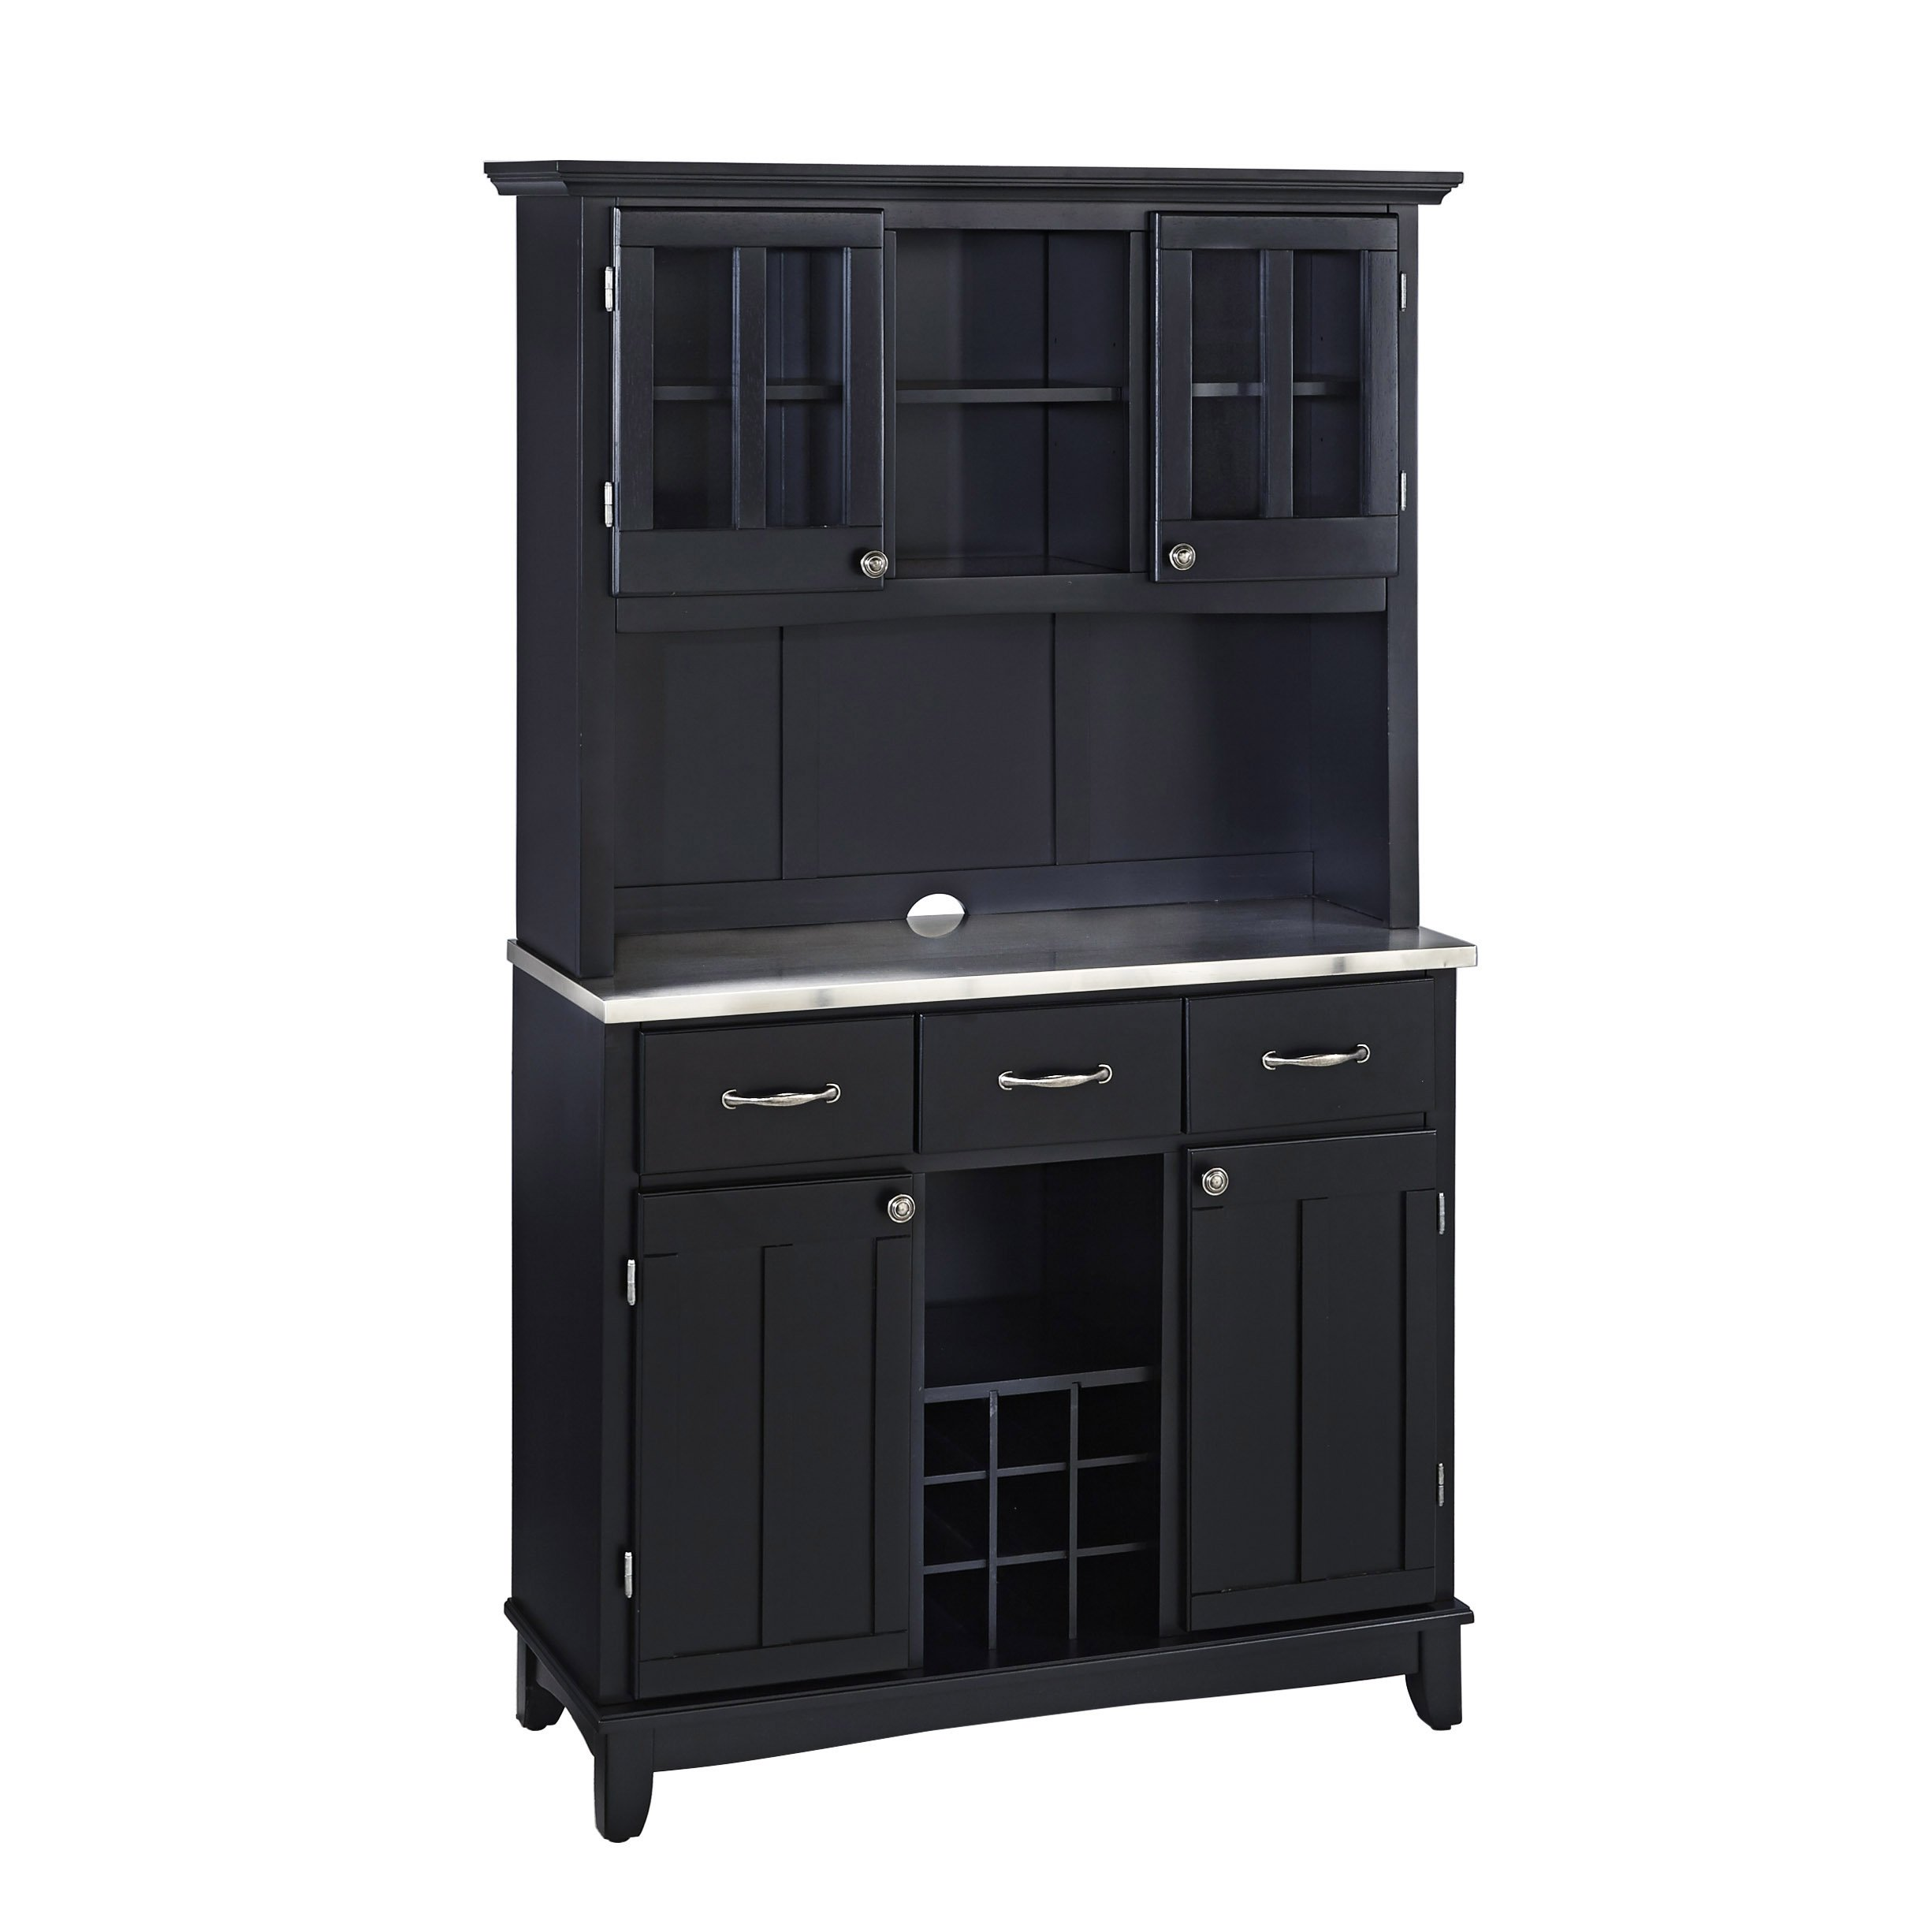 Home Styles 5100-0043-42 Buffet of Buffets Stainless Steel Top Buffet with Hutch, Black Finish, 41-3/4-Inch